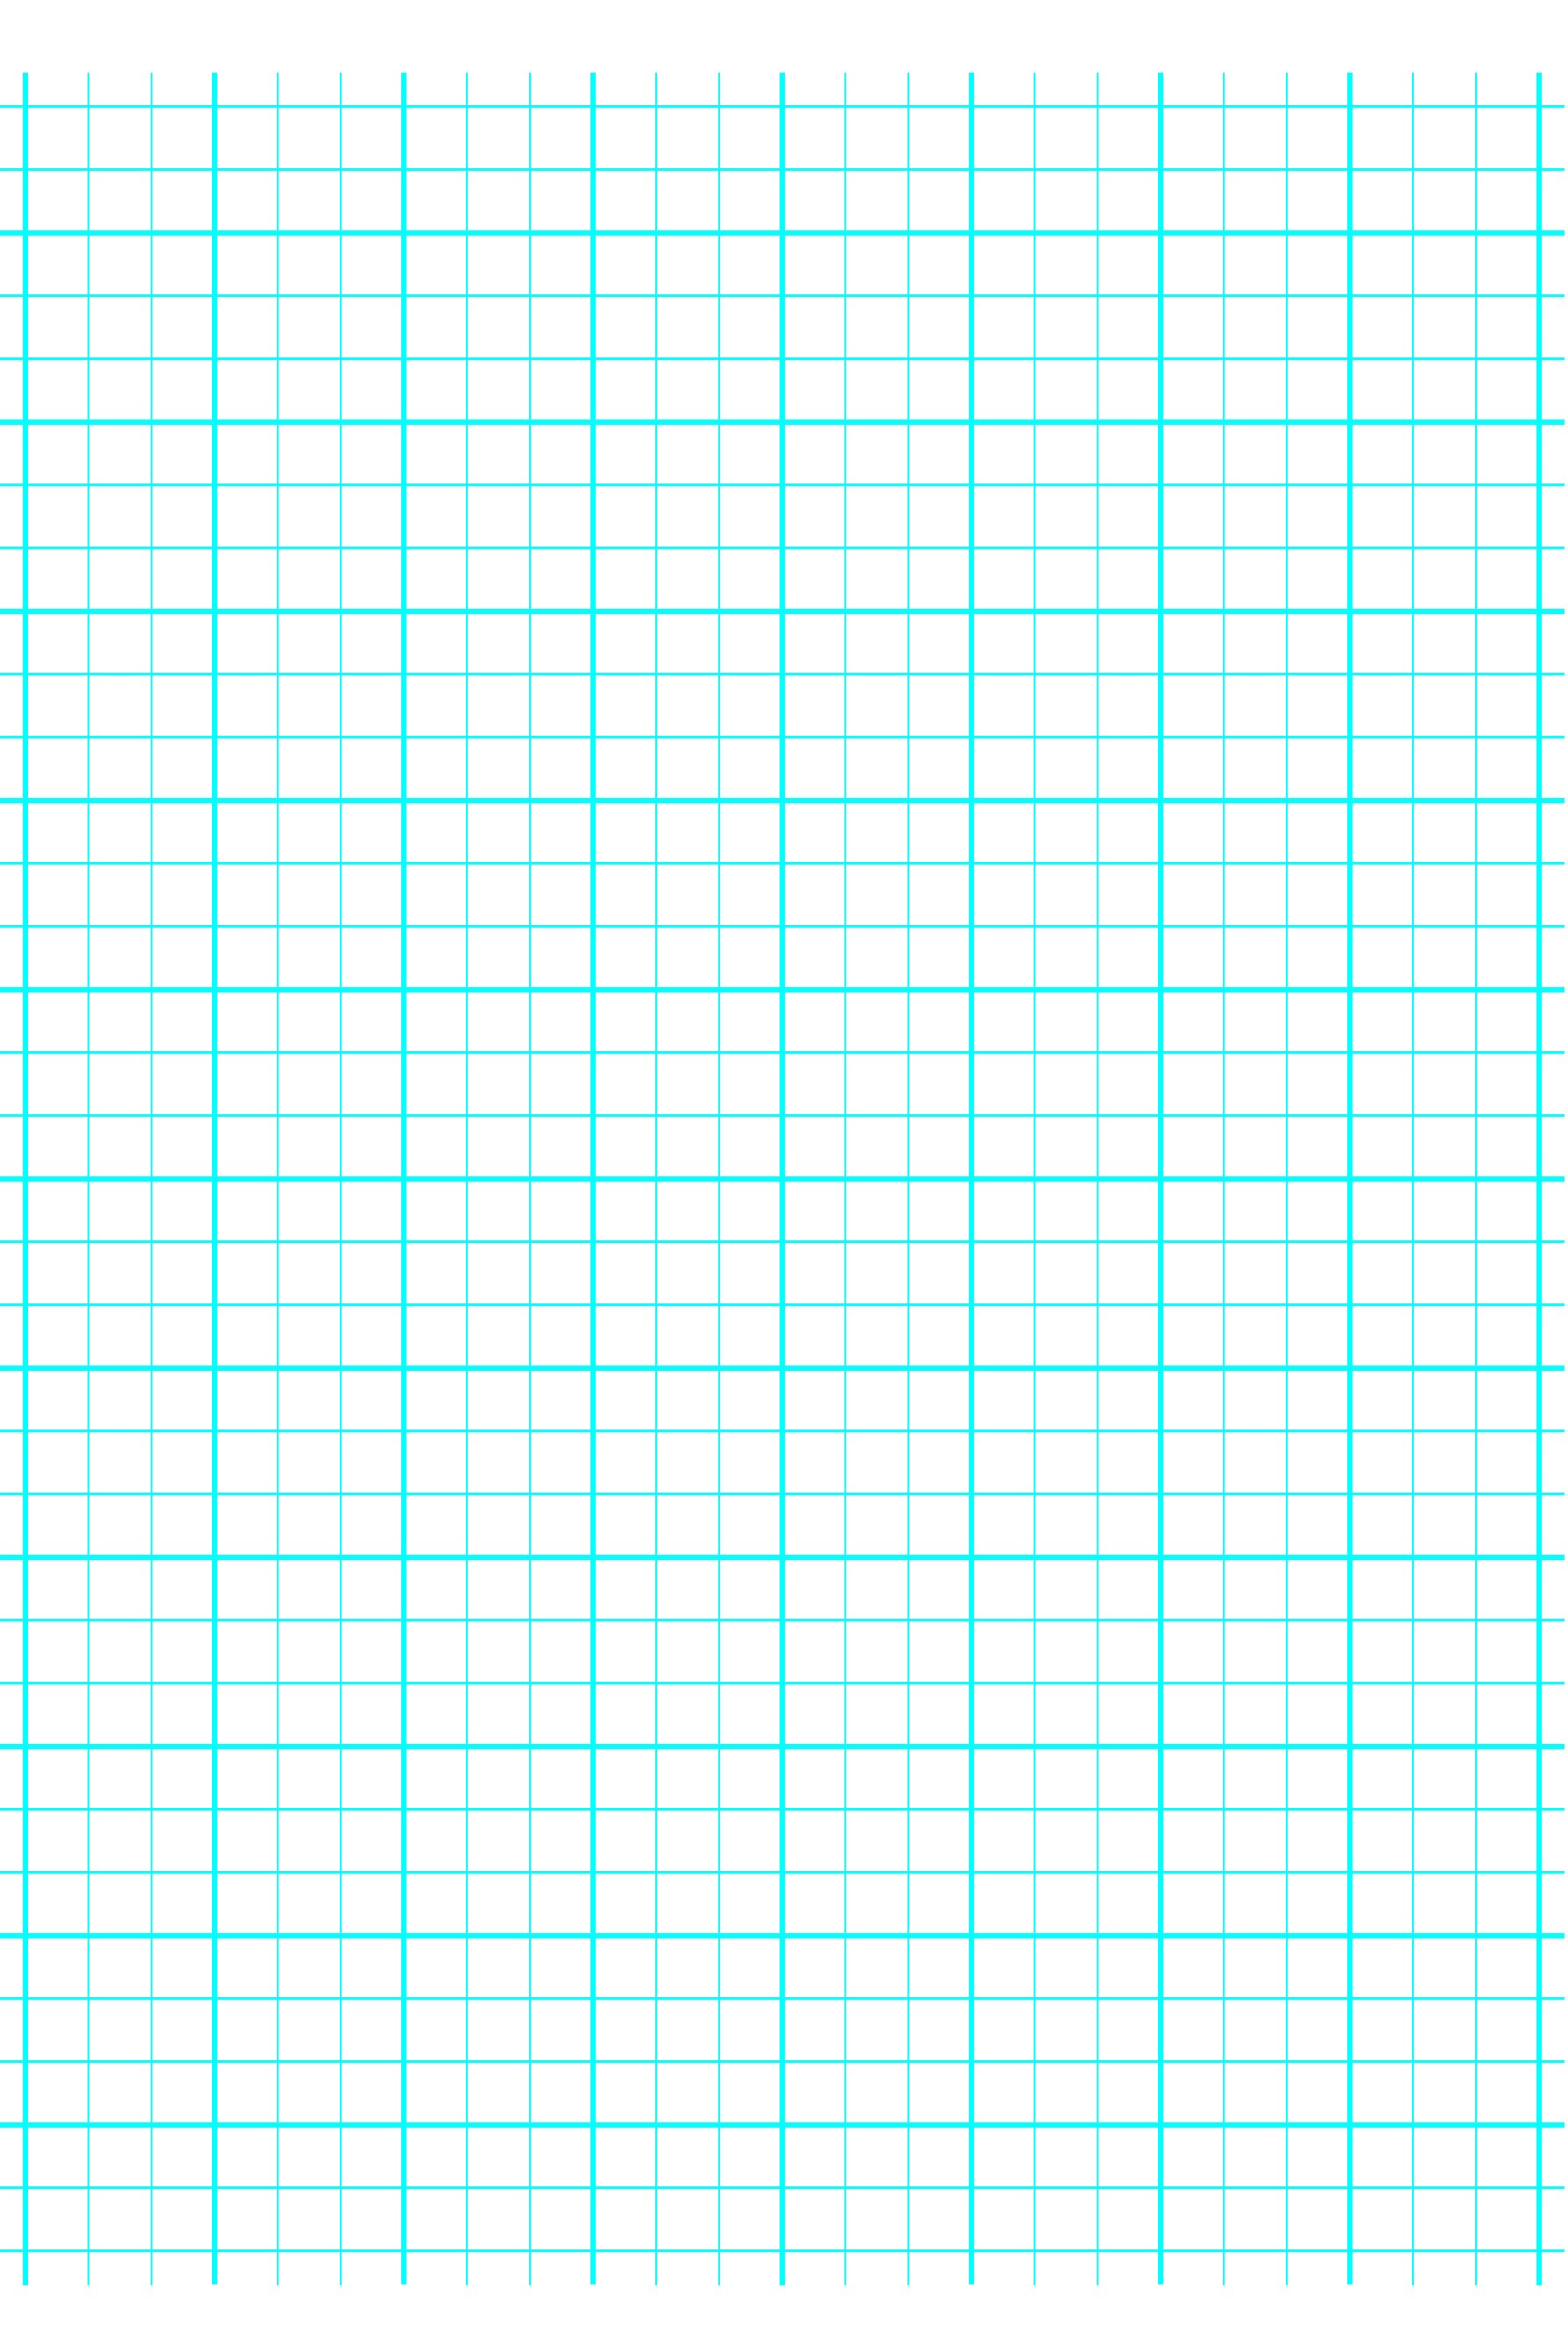 3 Lines Per Inch Graph Paper On A4 Sized Paper Heavy